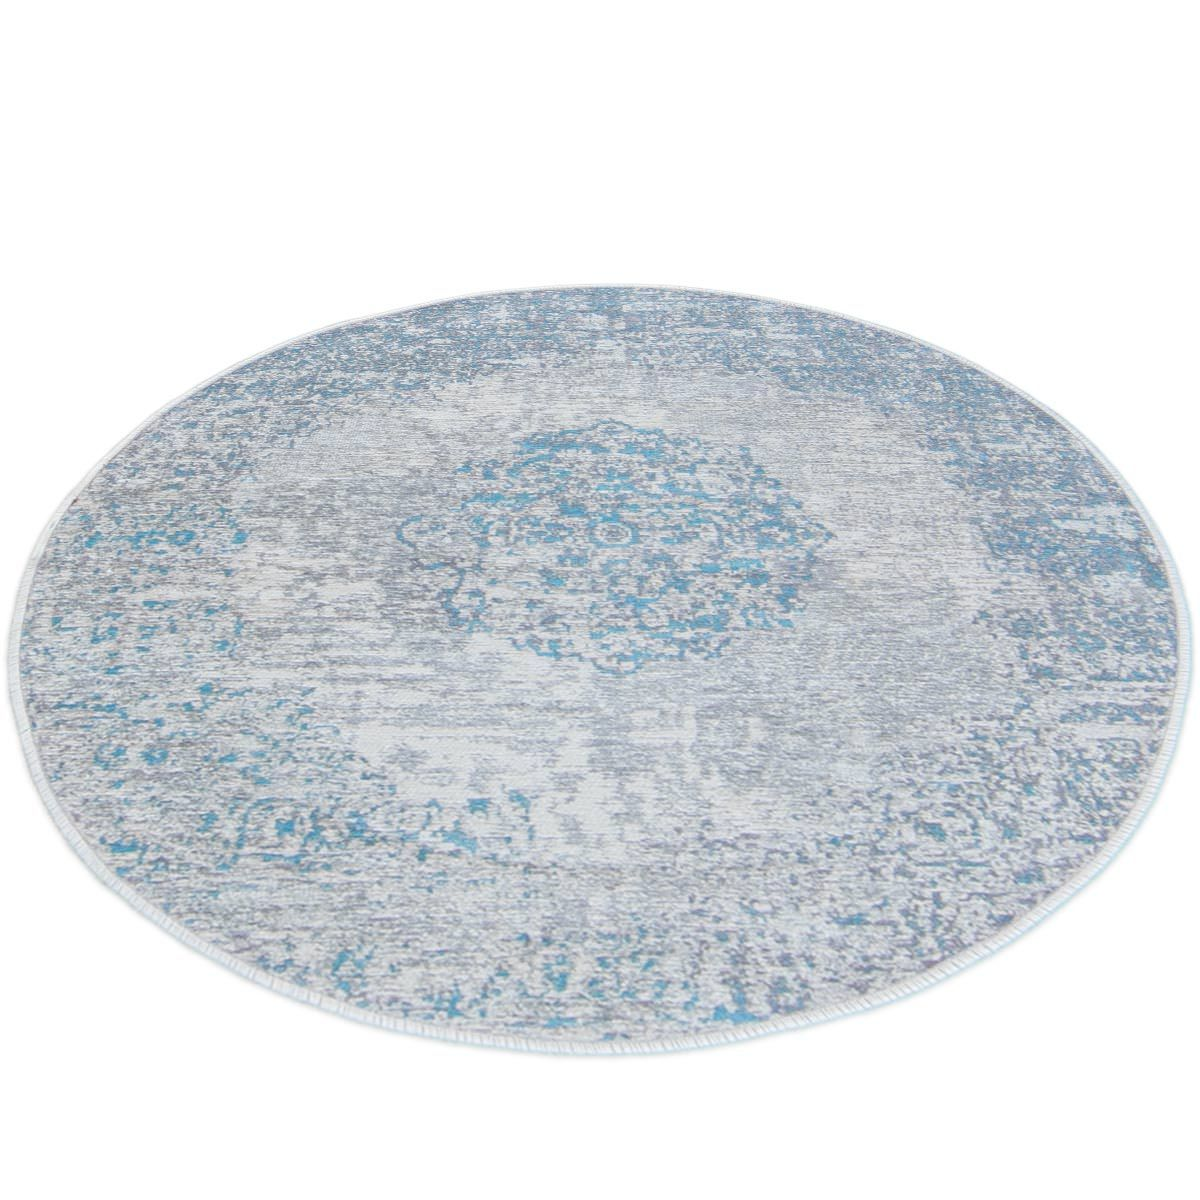 Marseille Rug 36 Light Blue Round 2